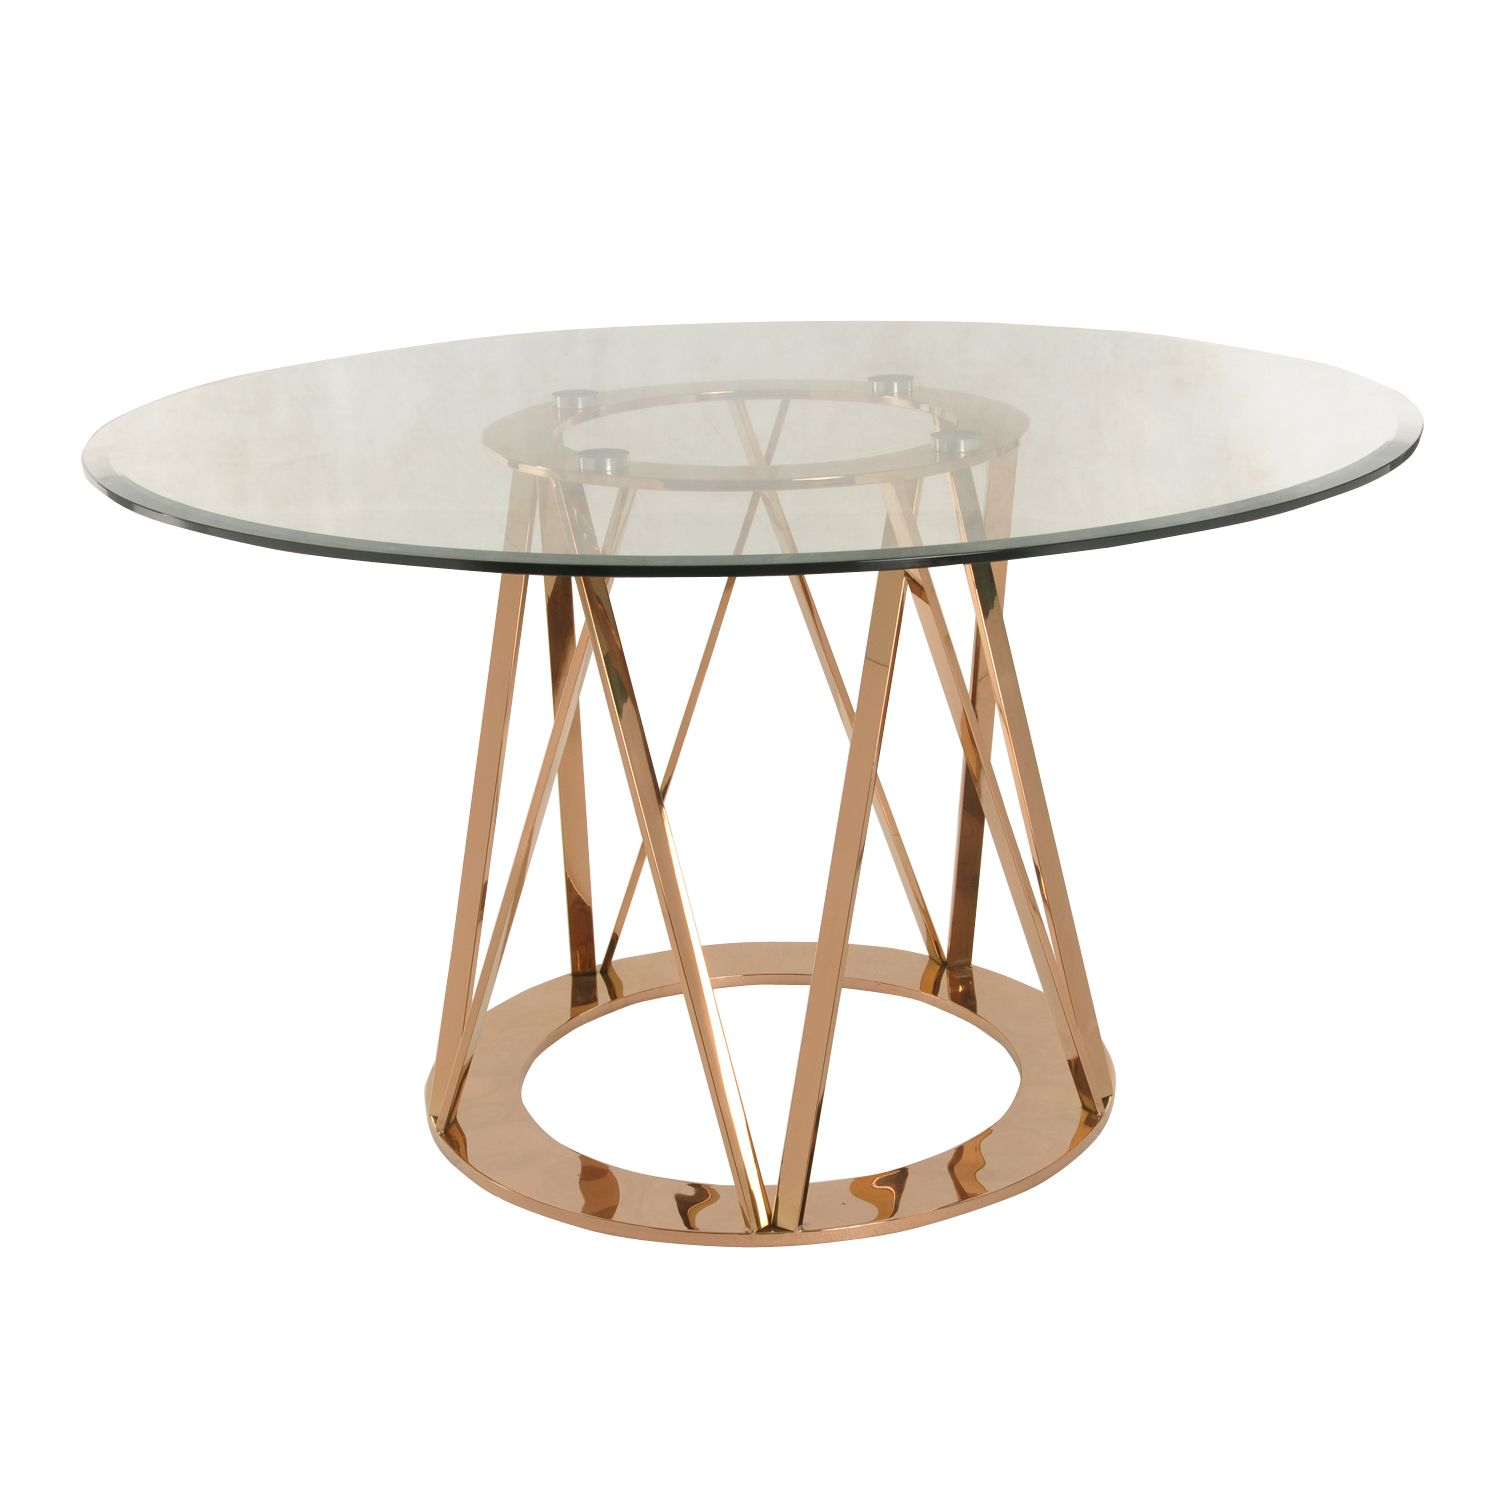 rolin round dining table rose gold npd lvmkt summer antique faceted accent with glass top what console room essentials lamp kitchen and chairs small zebi lawn couch end tables